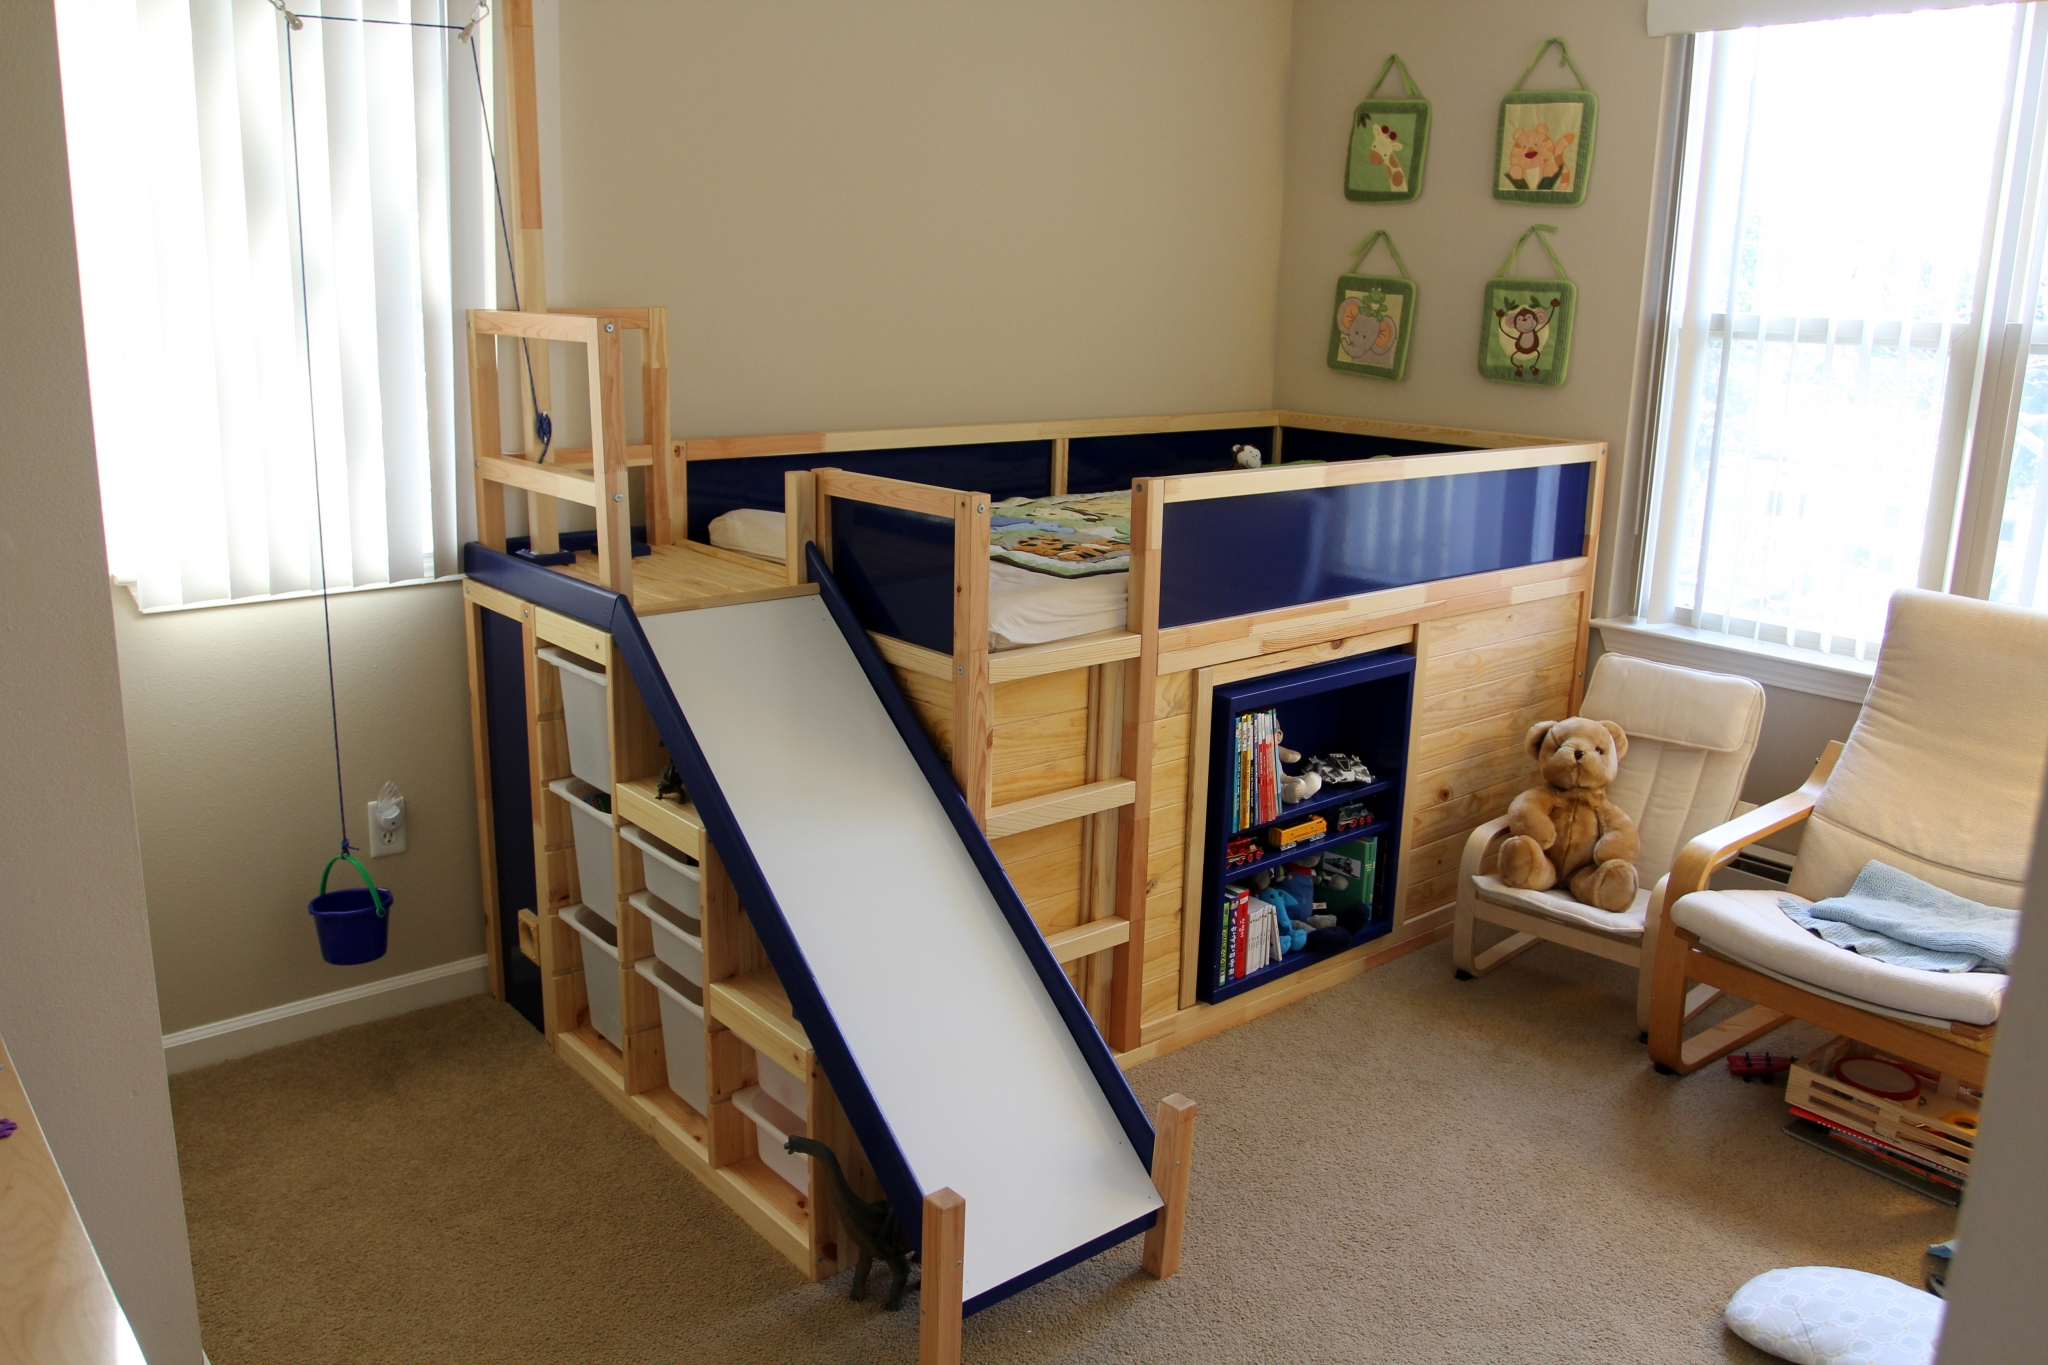 Learn How To Make An Awesome Kids Bed With Ikea Parts